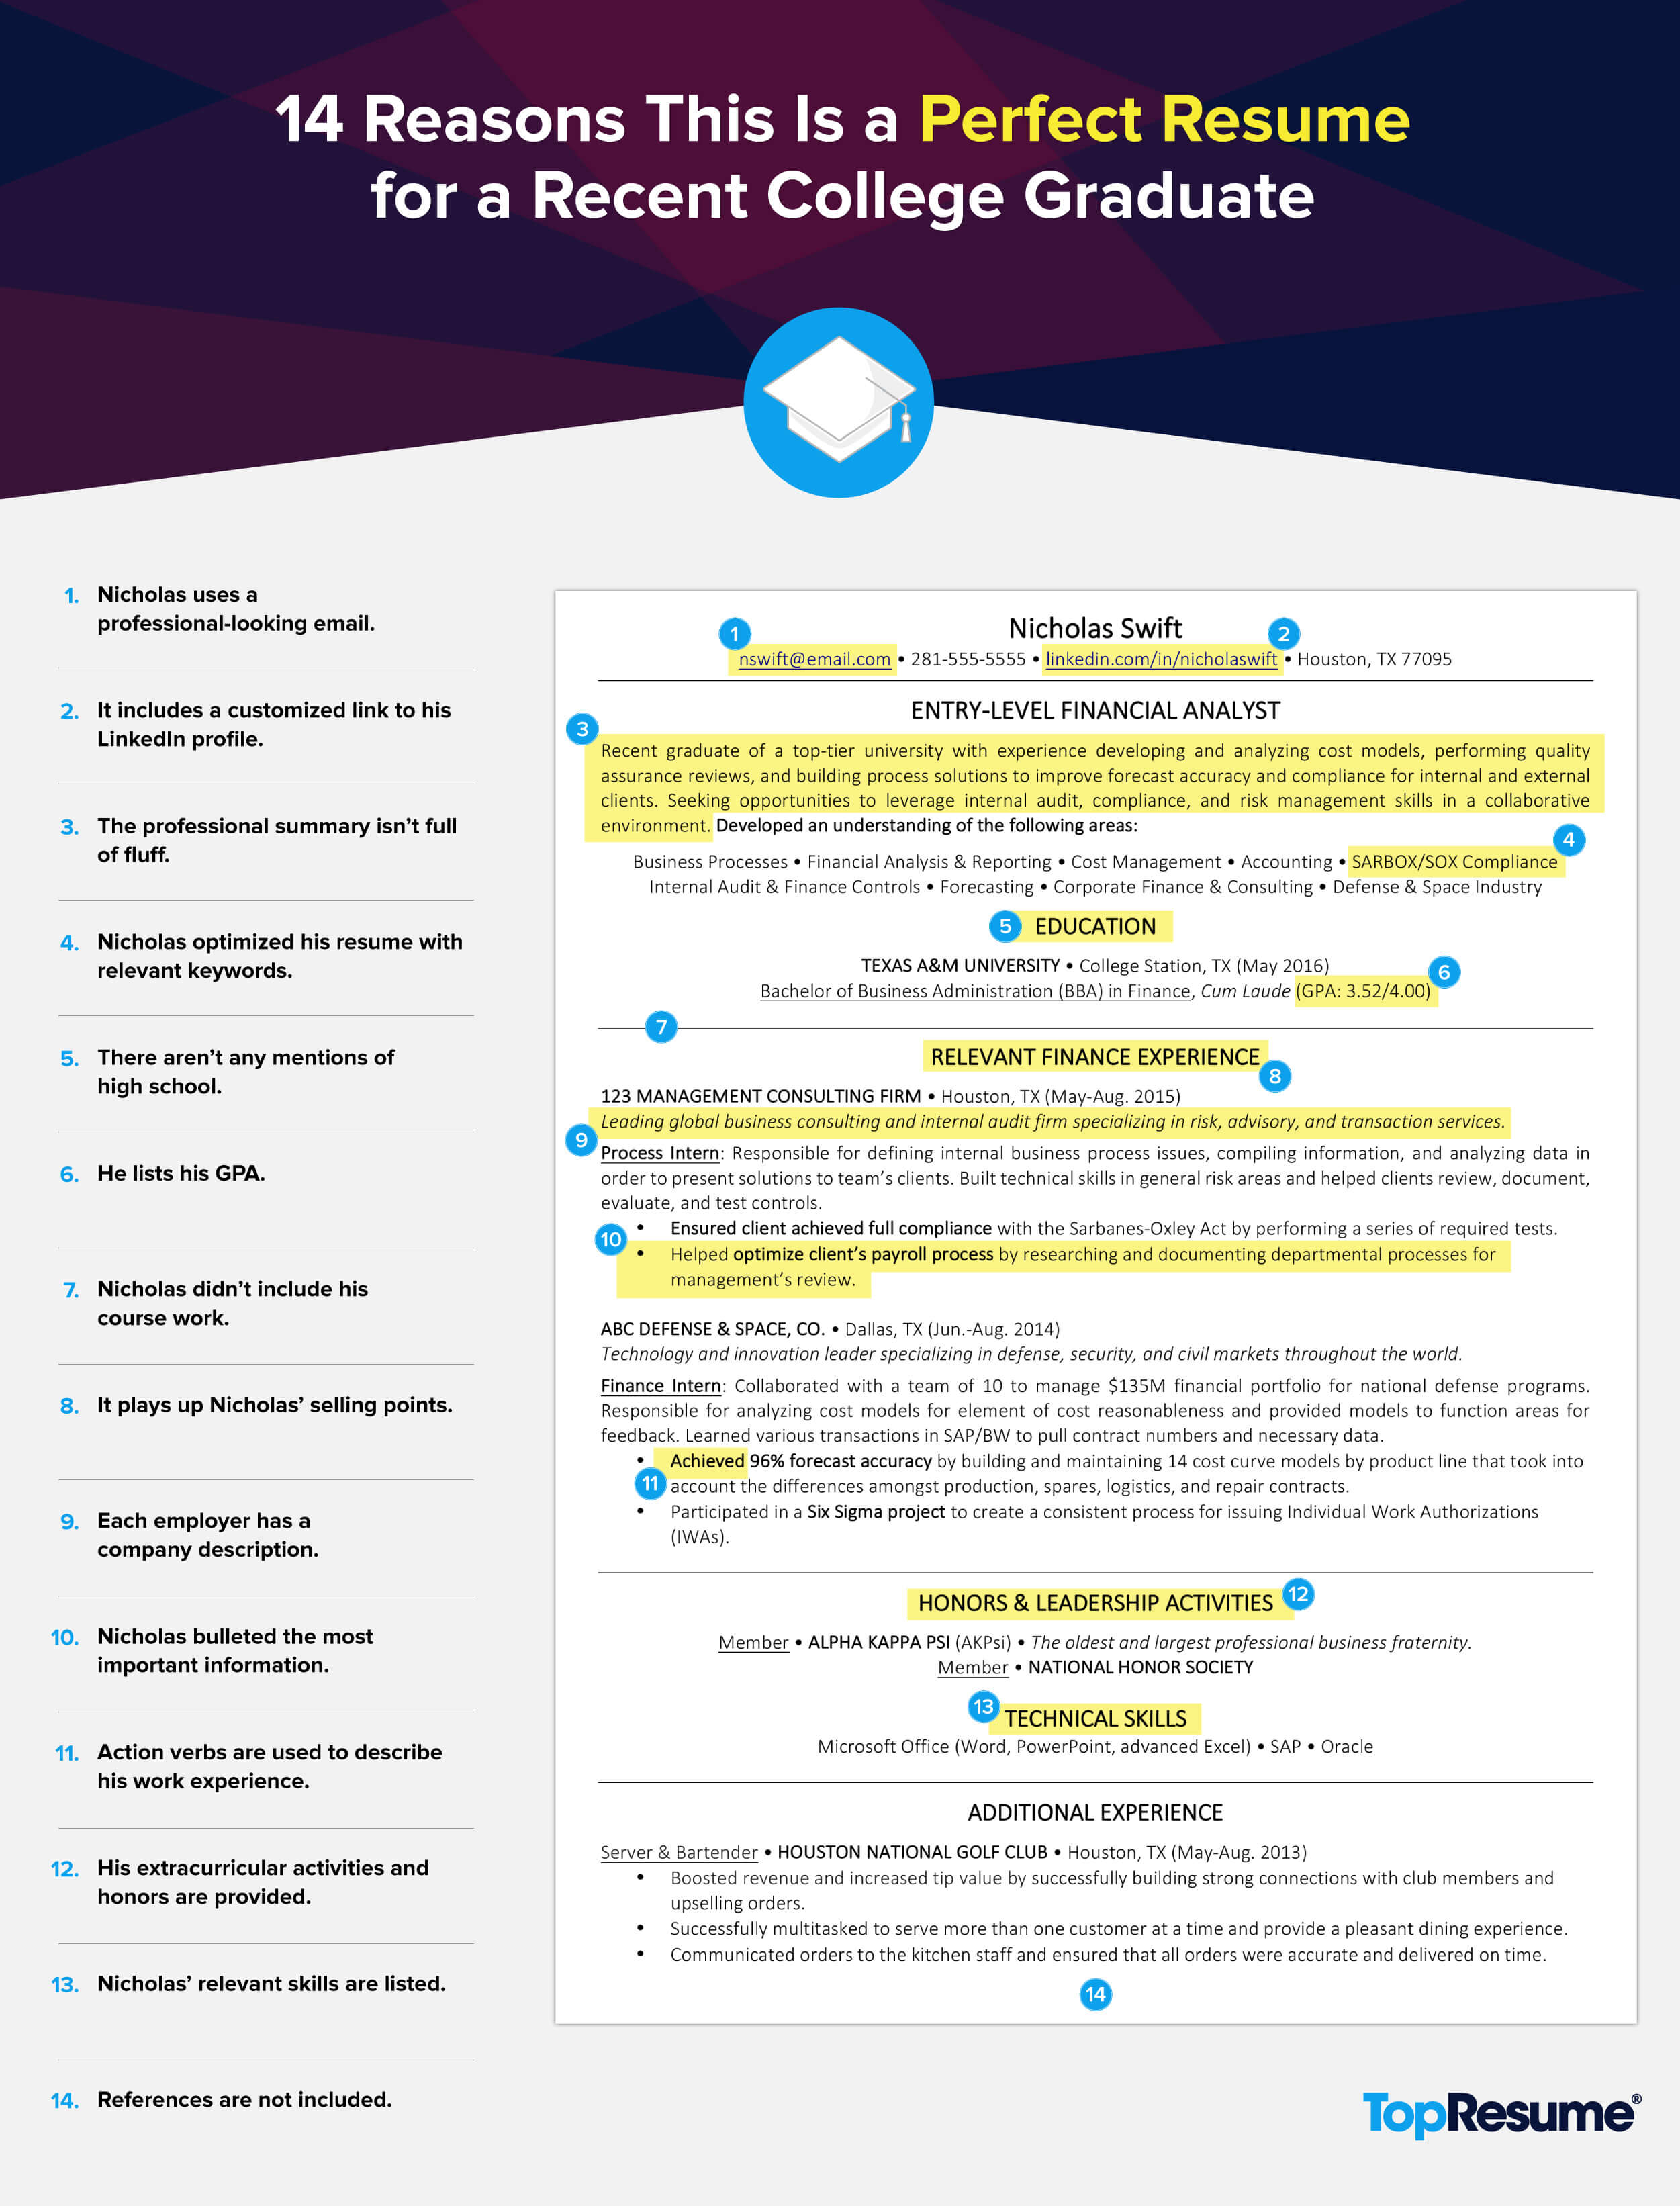 14 Reasons This is a Perfect Recent College Graduate Resume | TopResume